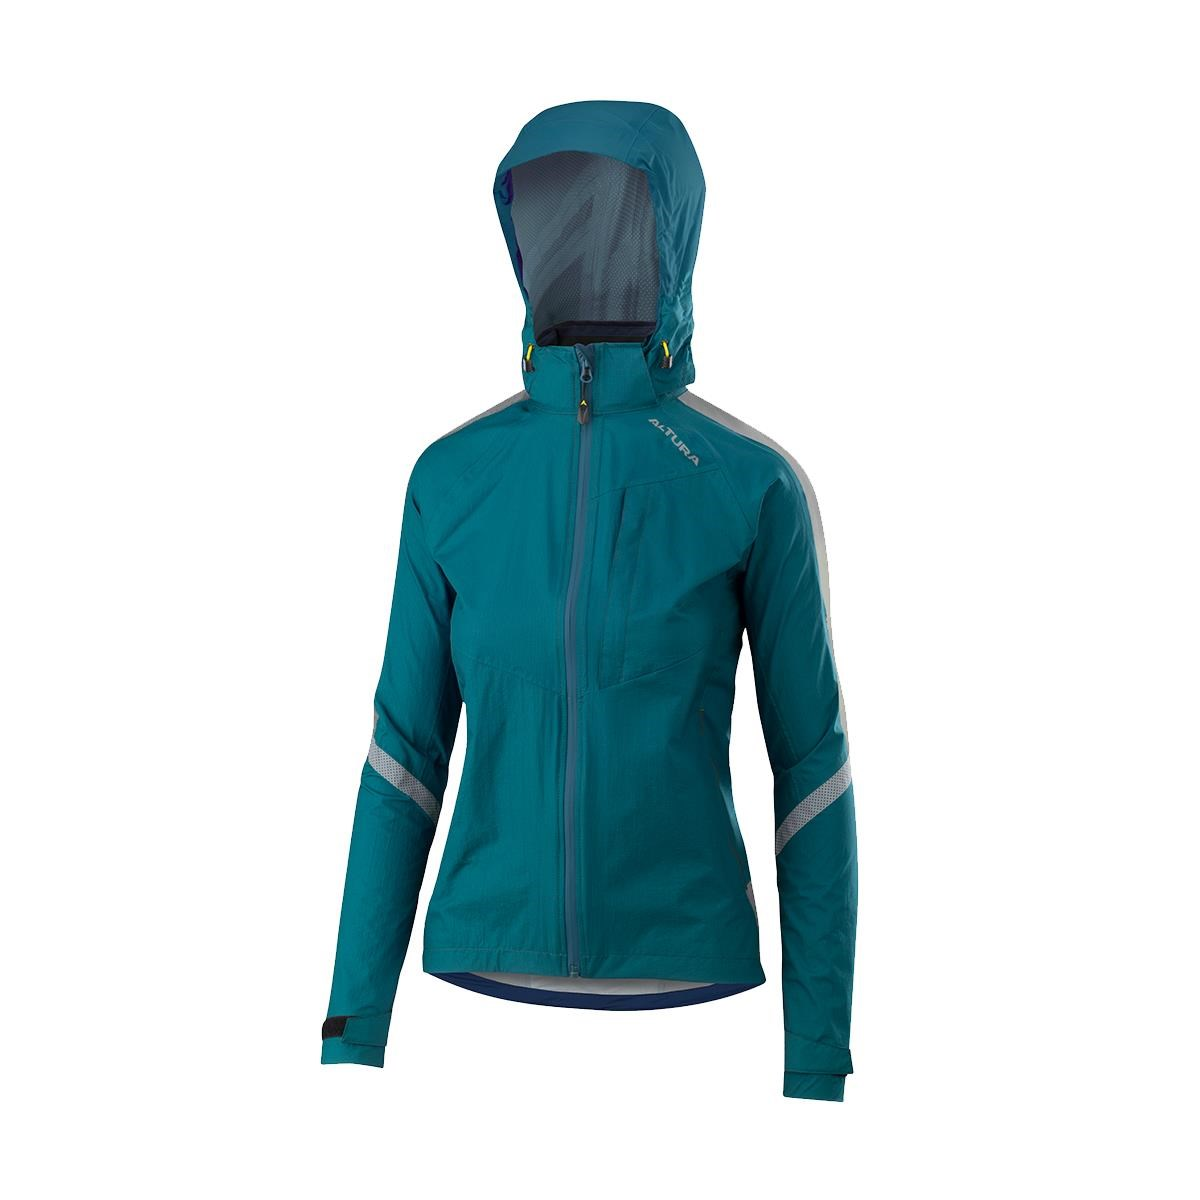 Women's Nightvision Cyclone Jacket